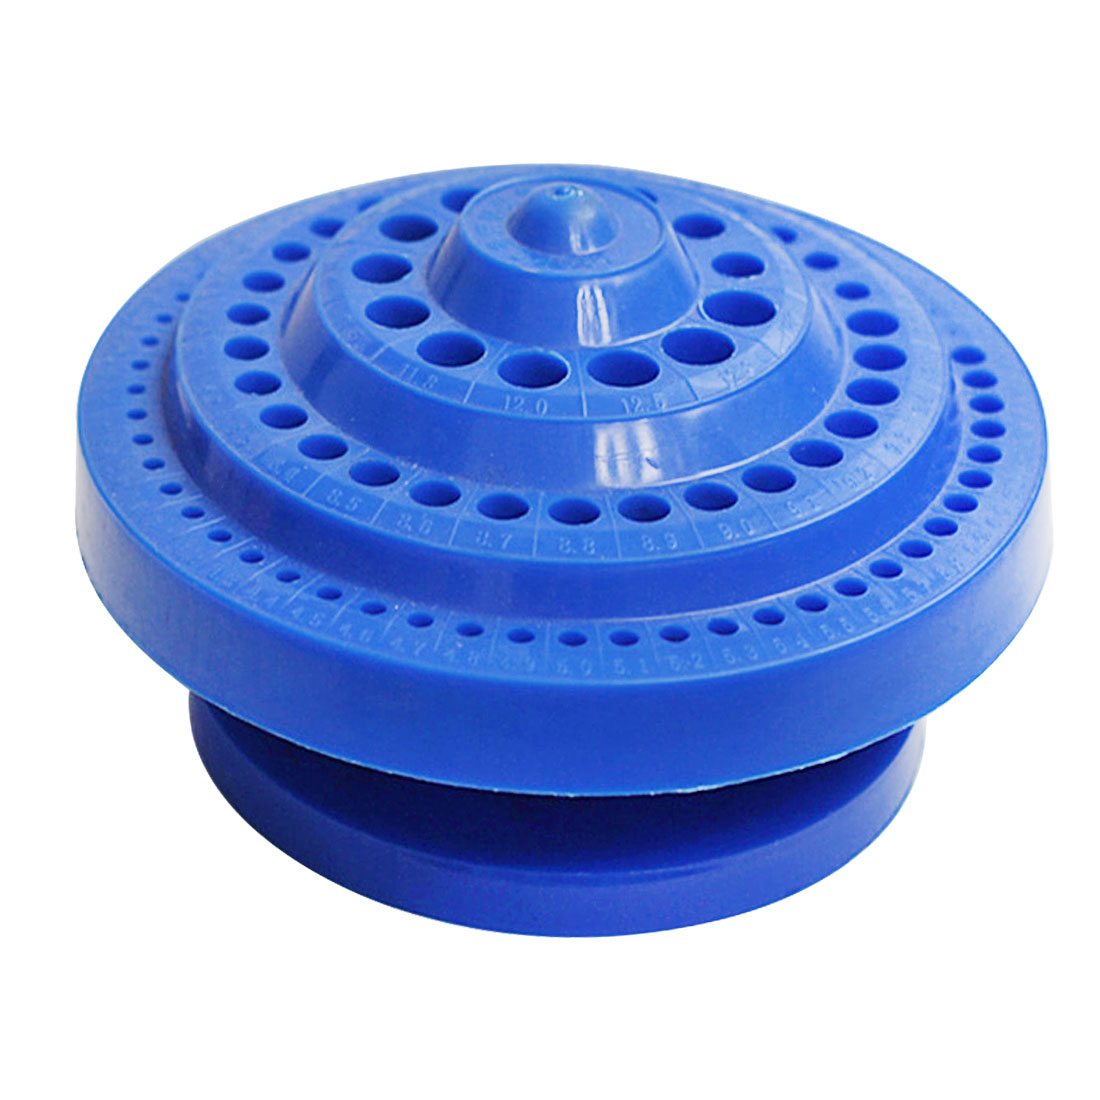 New 1pcs Round Shape Plastic Hard 100pcs 1-13mm Drill Bit Storage Case Blue